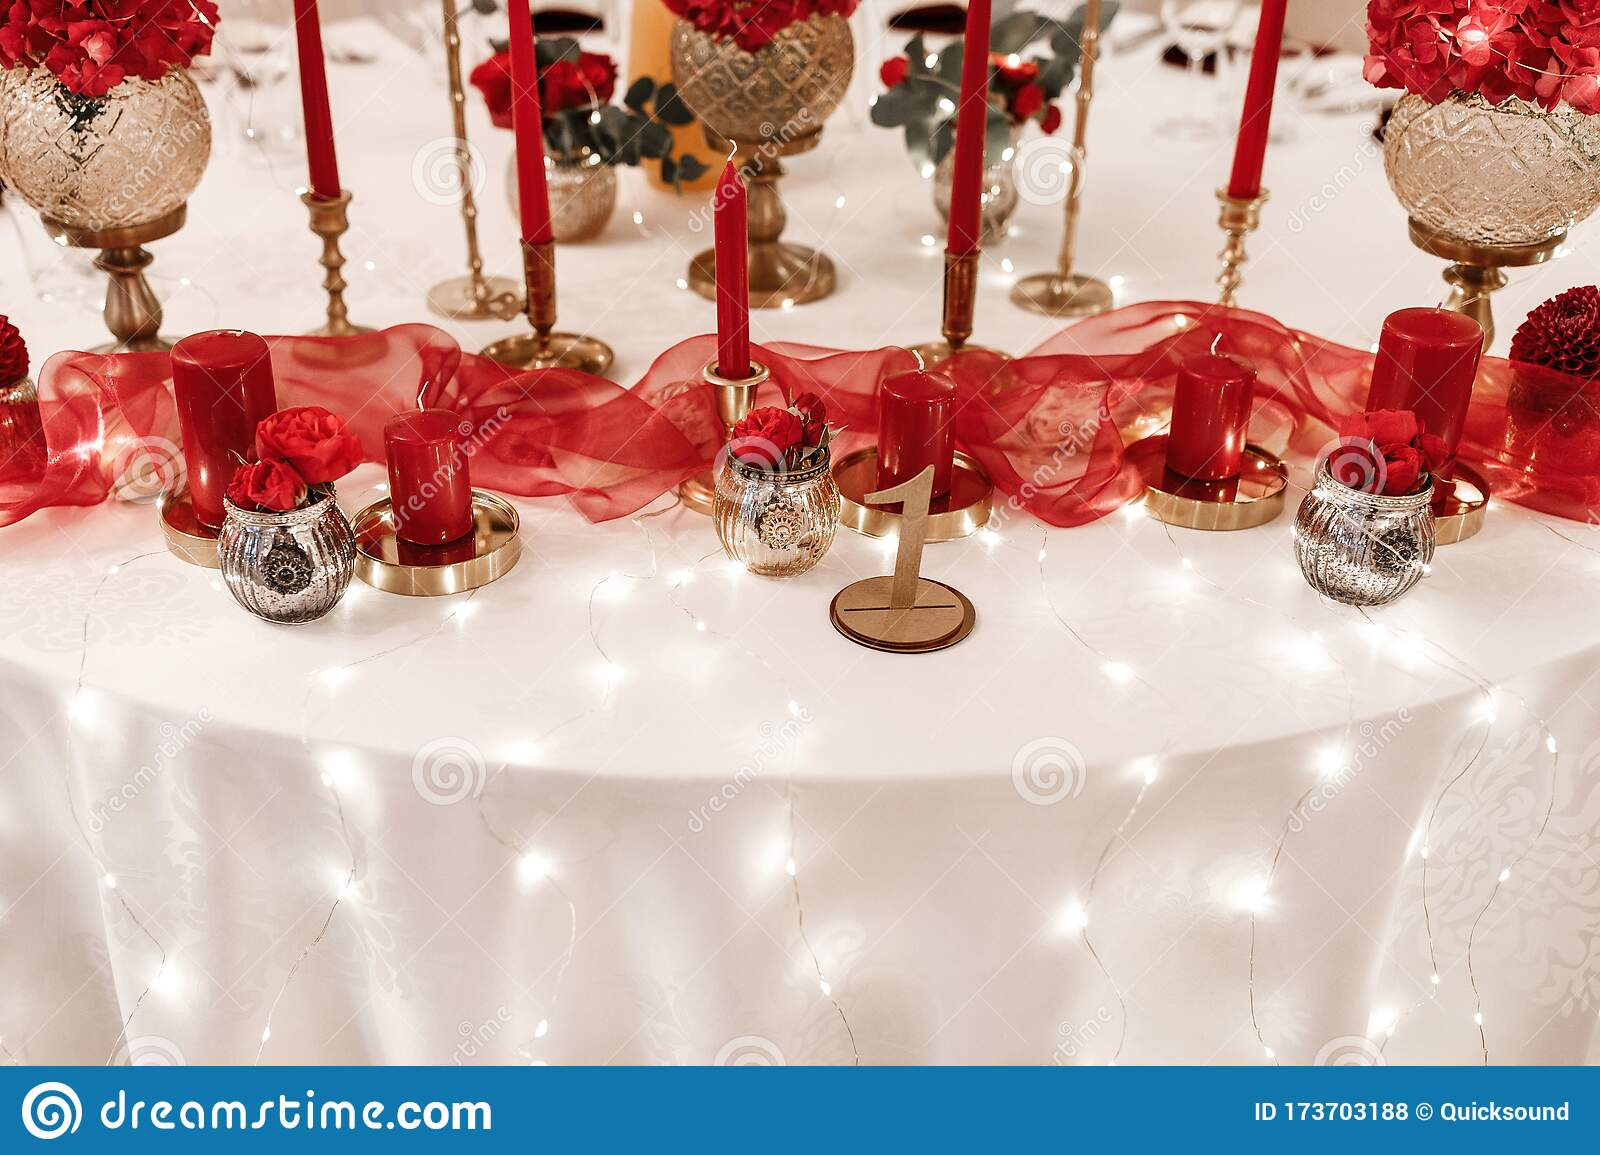 Red And Gold Table Decorations  from thumbs.dreamstime.com